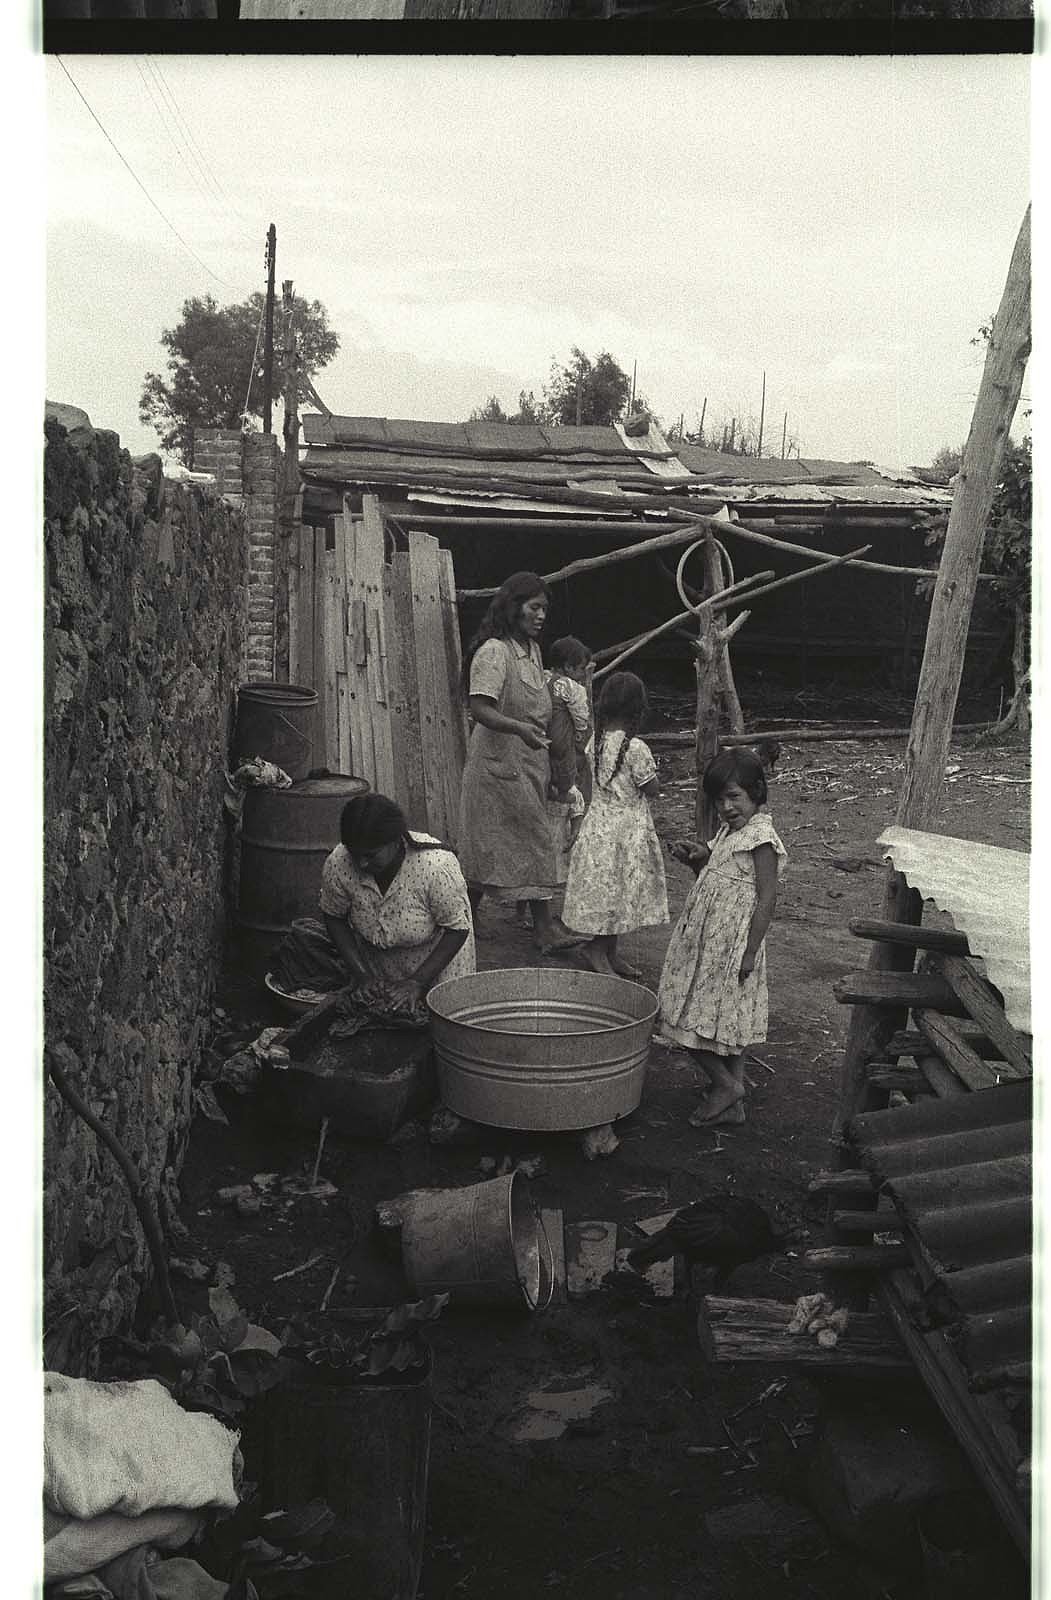 Women wash clothes and care for children in the courtyard of a bracero family home in San Mateo, Mexico